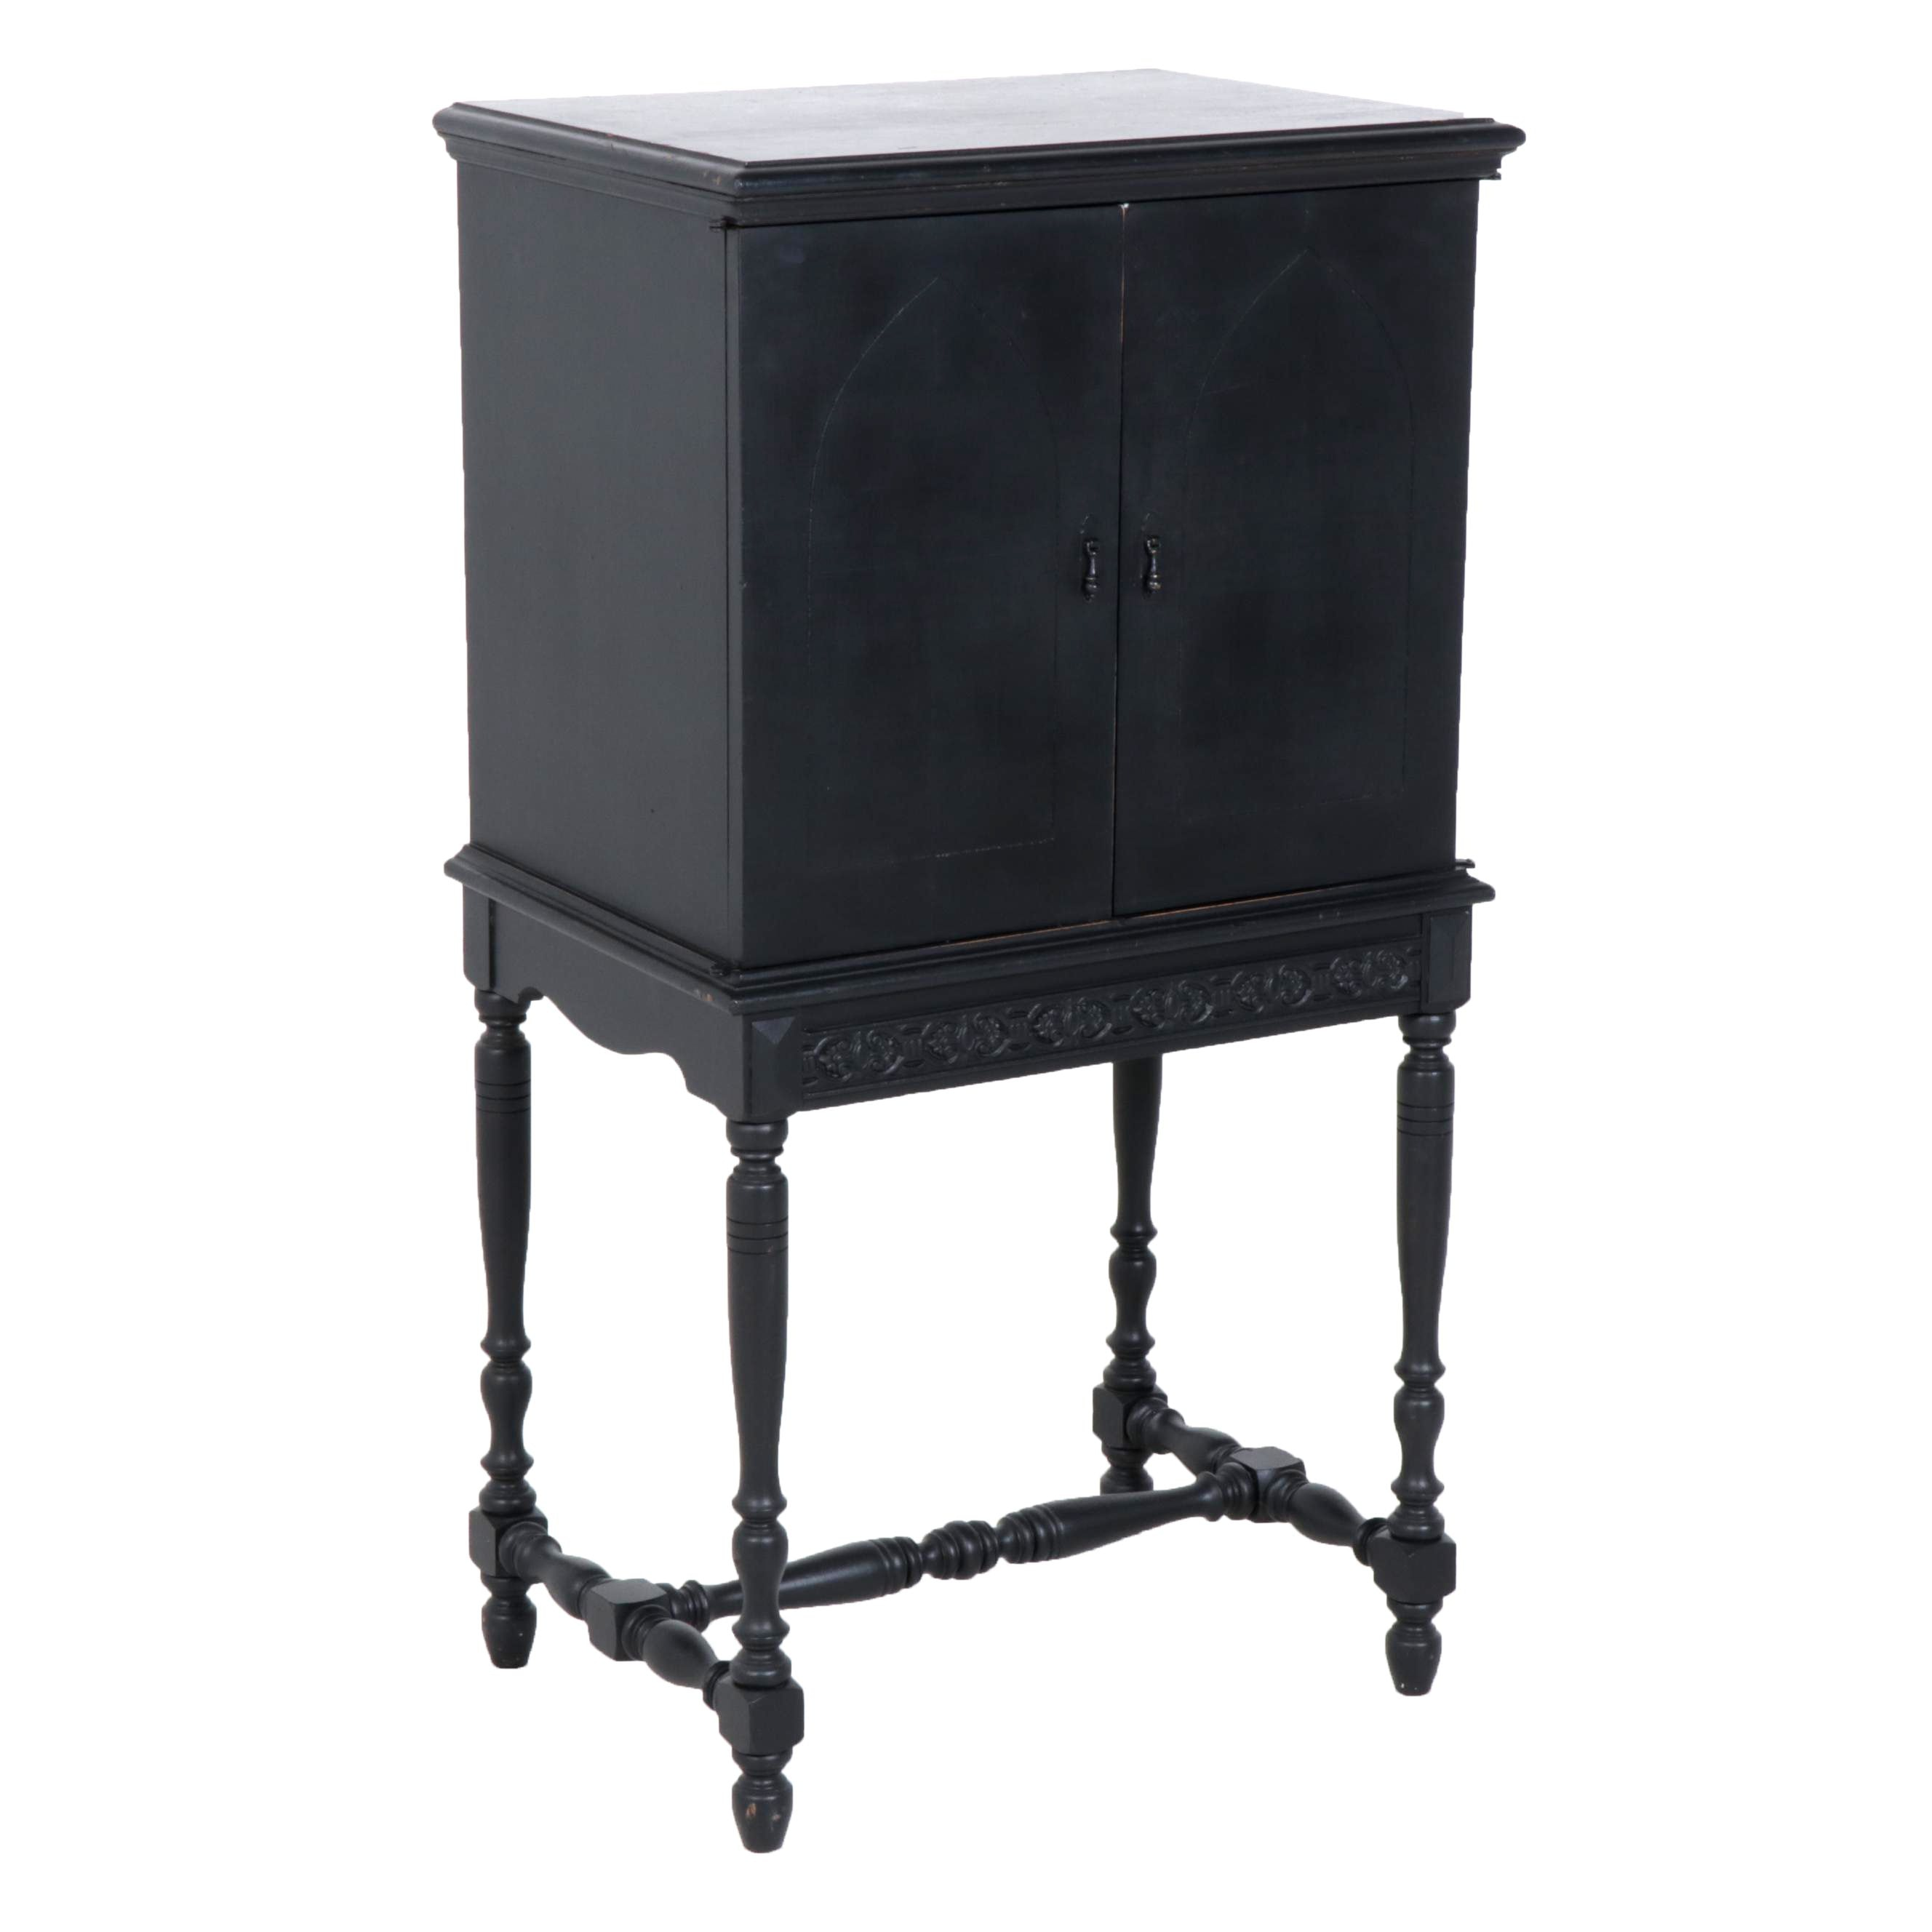 Colonial Revival Black-Painted Wooden Chest on Stand, Mid-20th Century